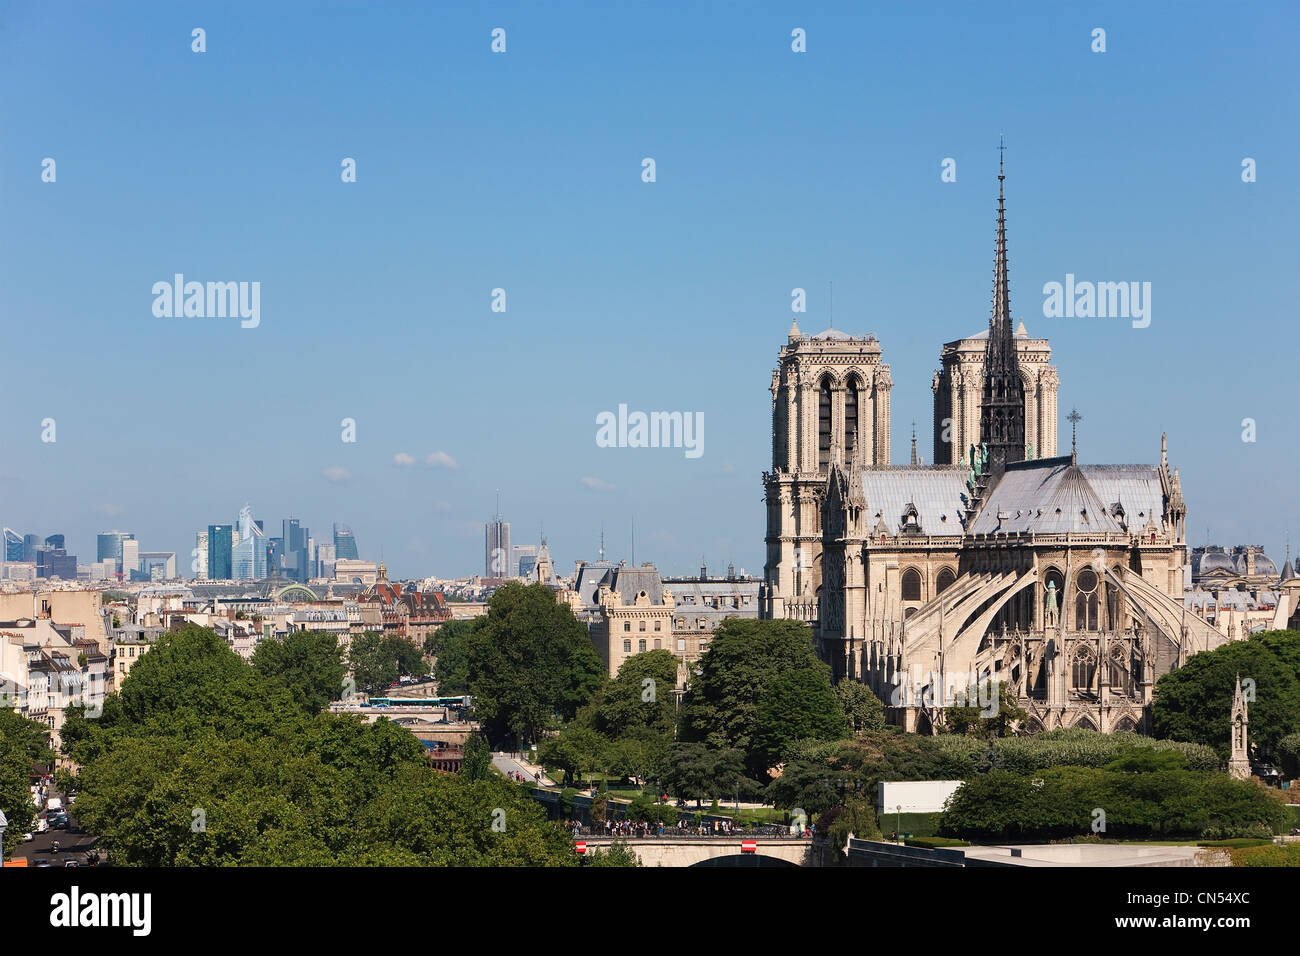 France, Paris, panorama over Notre Dame de Paris cathedral with the banks of the Seine river listed as World Heritage - Stock Image